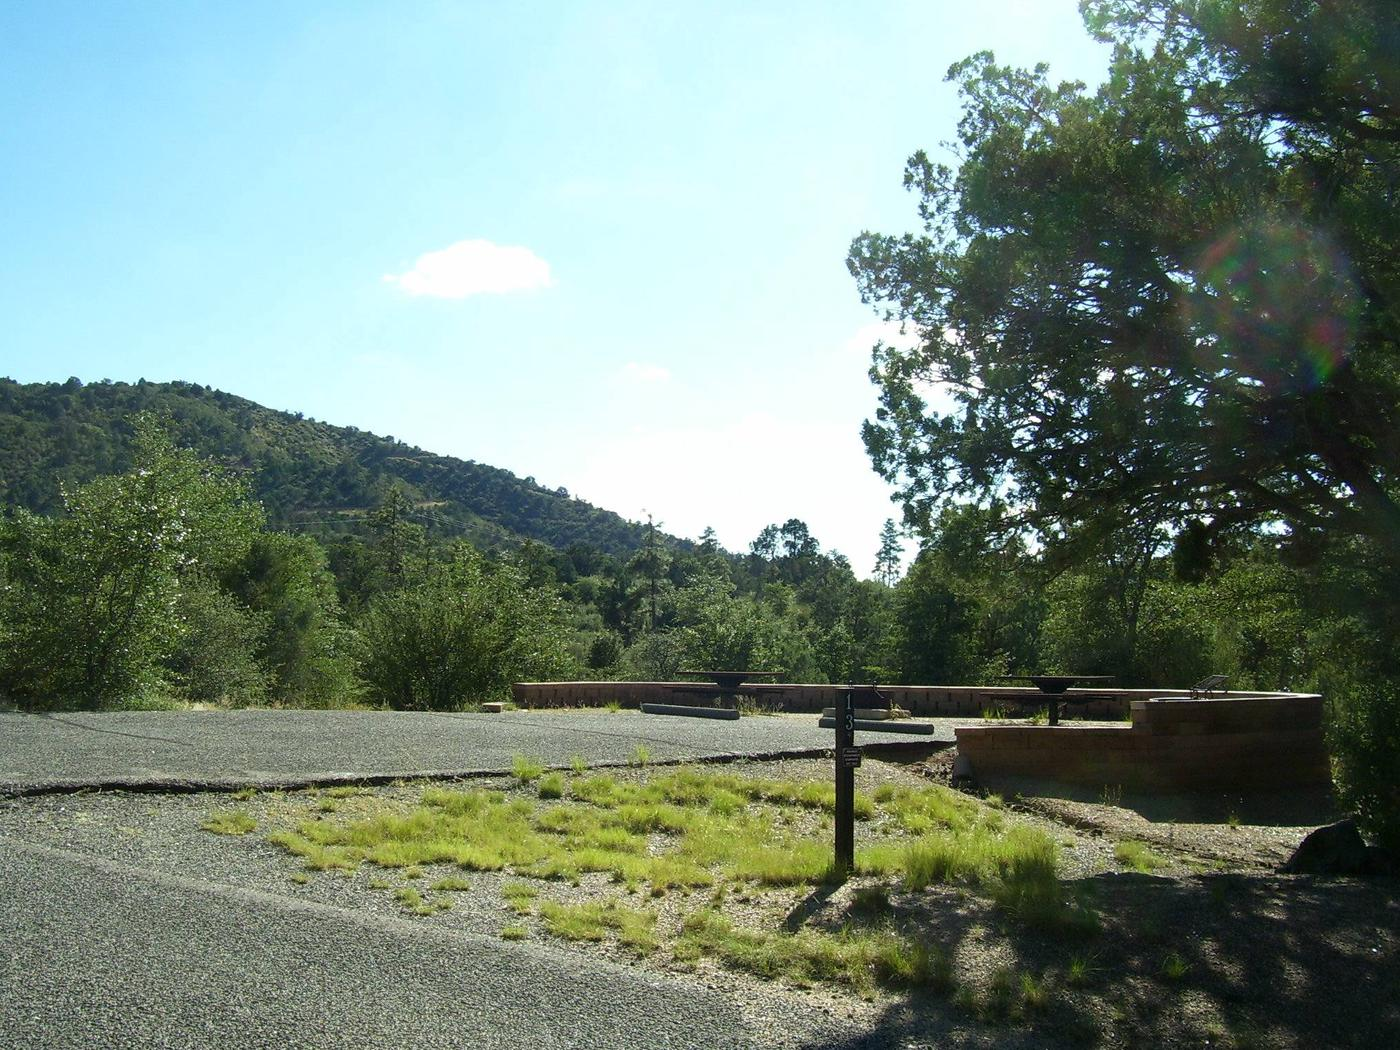 Double Site #13 with double parking, two tables and block retaining wall with no shade at the tables.Double Site #13 Yavapai Campground